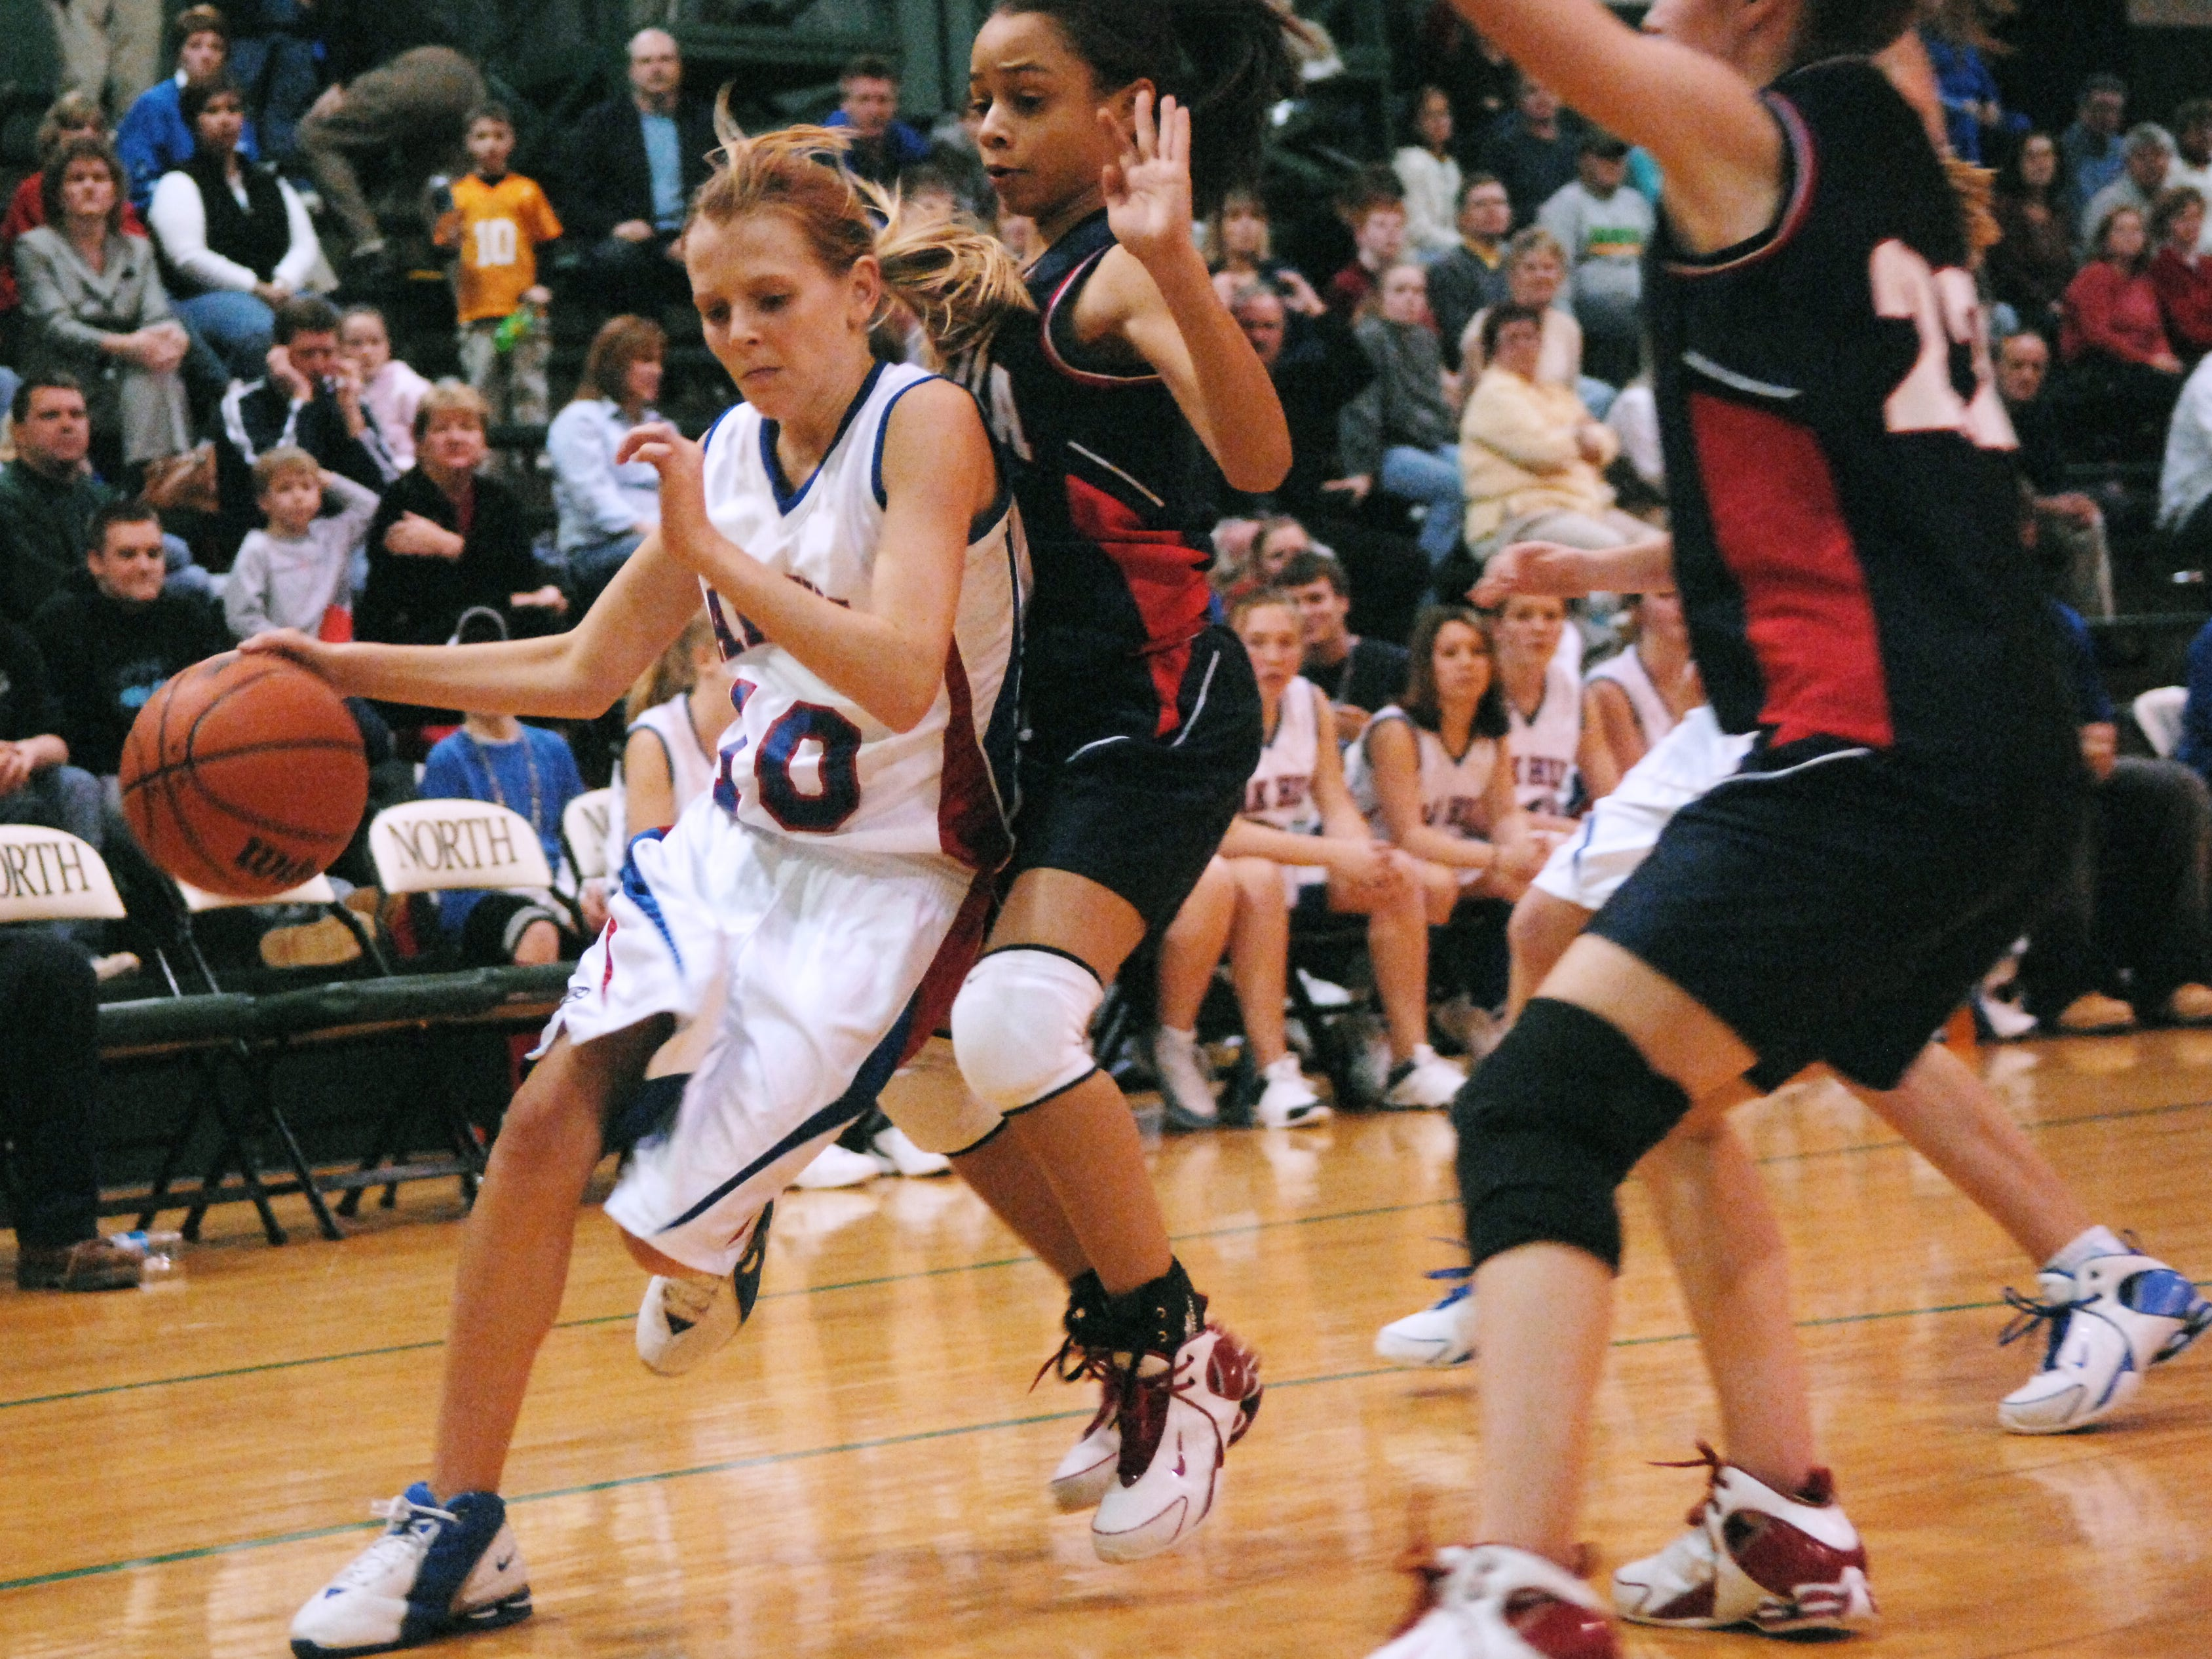 Oak Hill's Andi Qualls (10) slides past Plaza Park defenders Elayna Dorsey, center, and Megan Kappler (22) during the second half of their 2007 Middle School Varsity Girls Basketball Tournament championship game at North High School Monday night, Feb. 26, 2007.